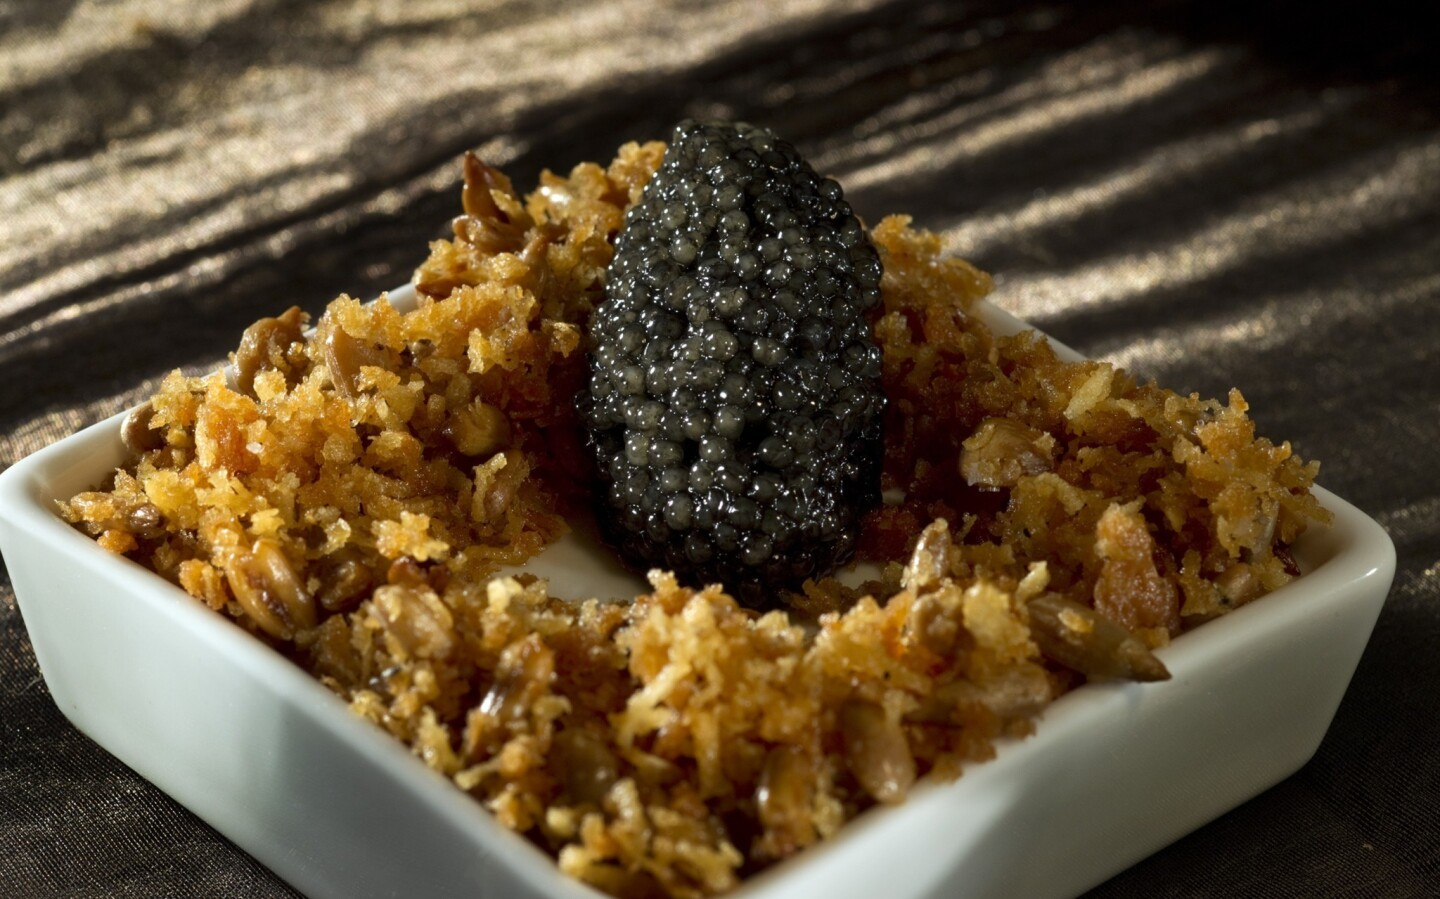 Rich and nutty yet subdued, a sunchoke and leek panna cotta lets the flavors of paddlefish caviar shine.